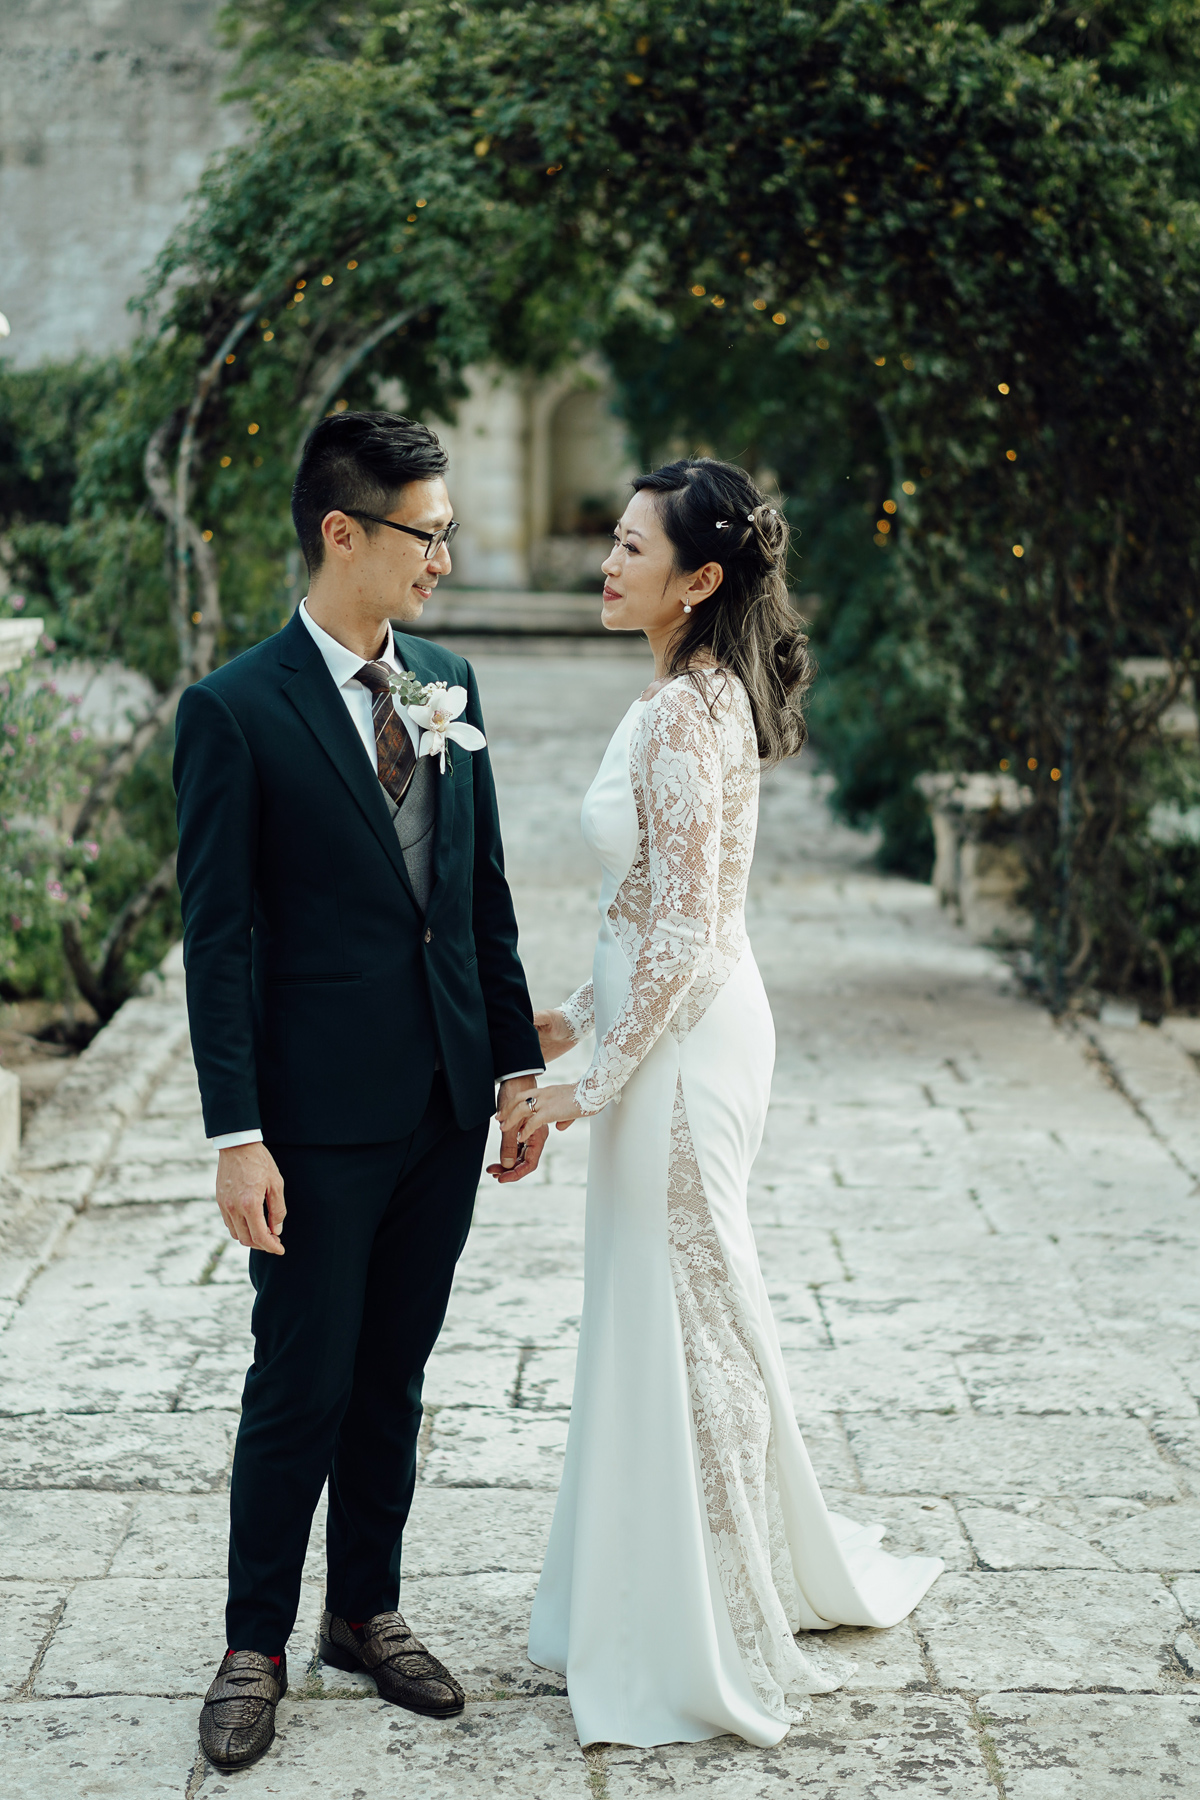 Wedding portrait in Malta